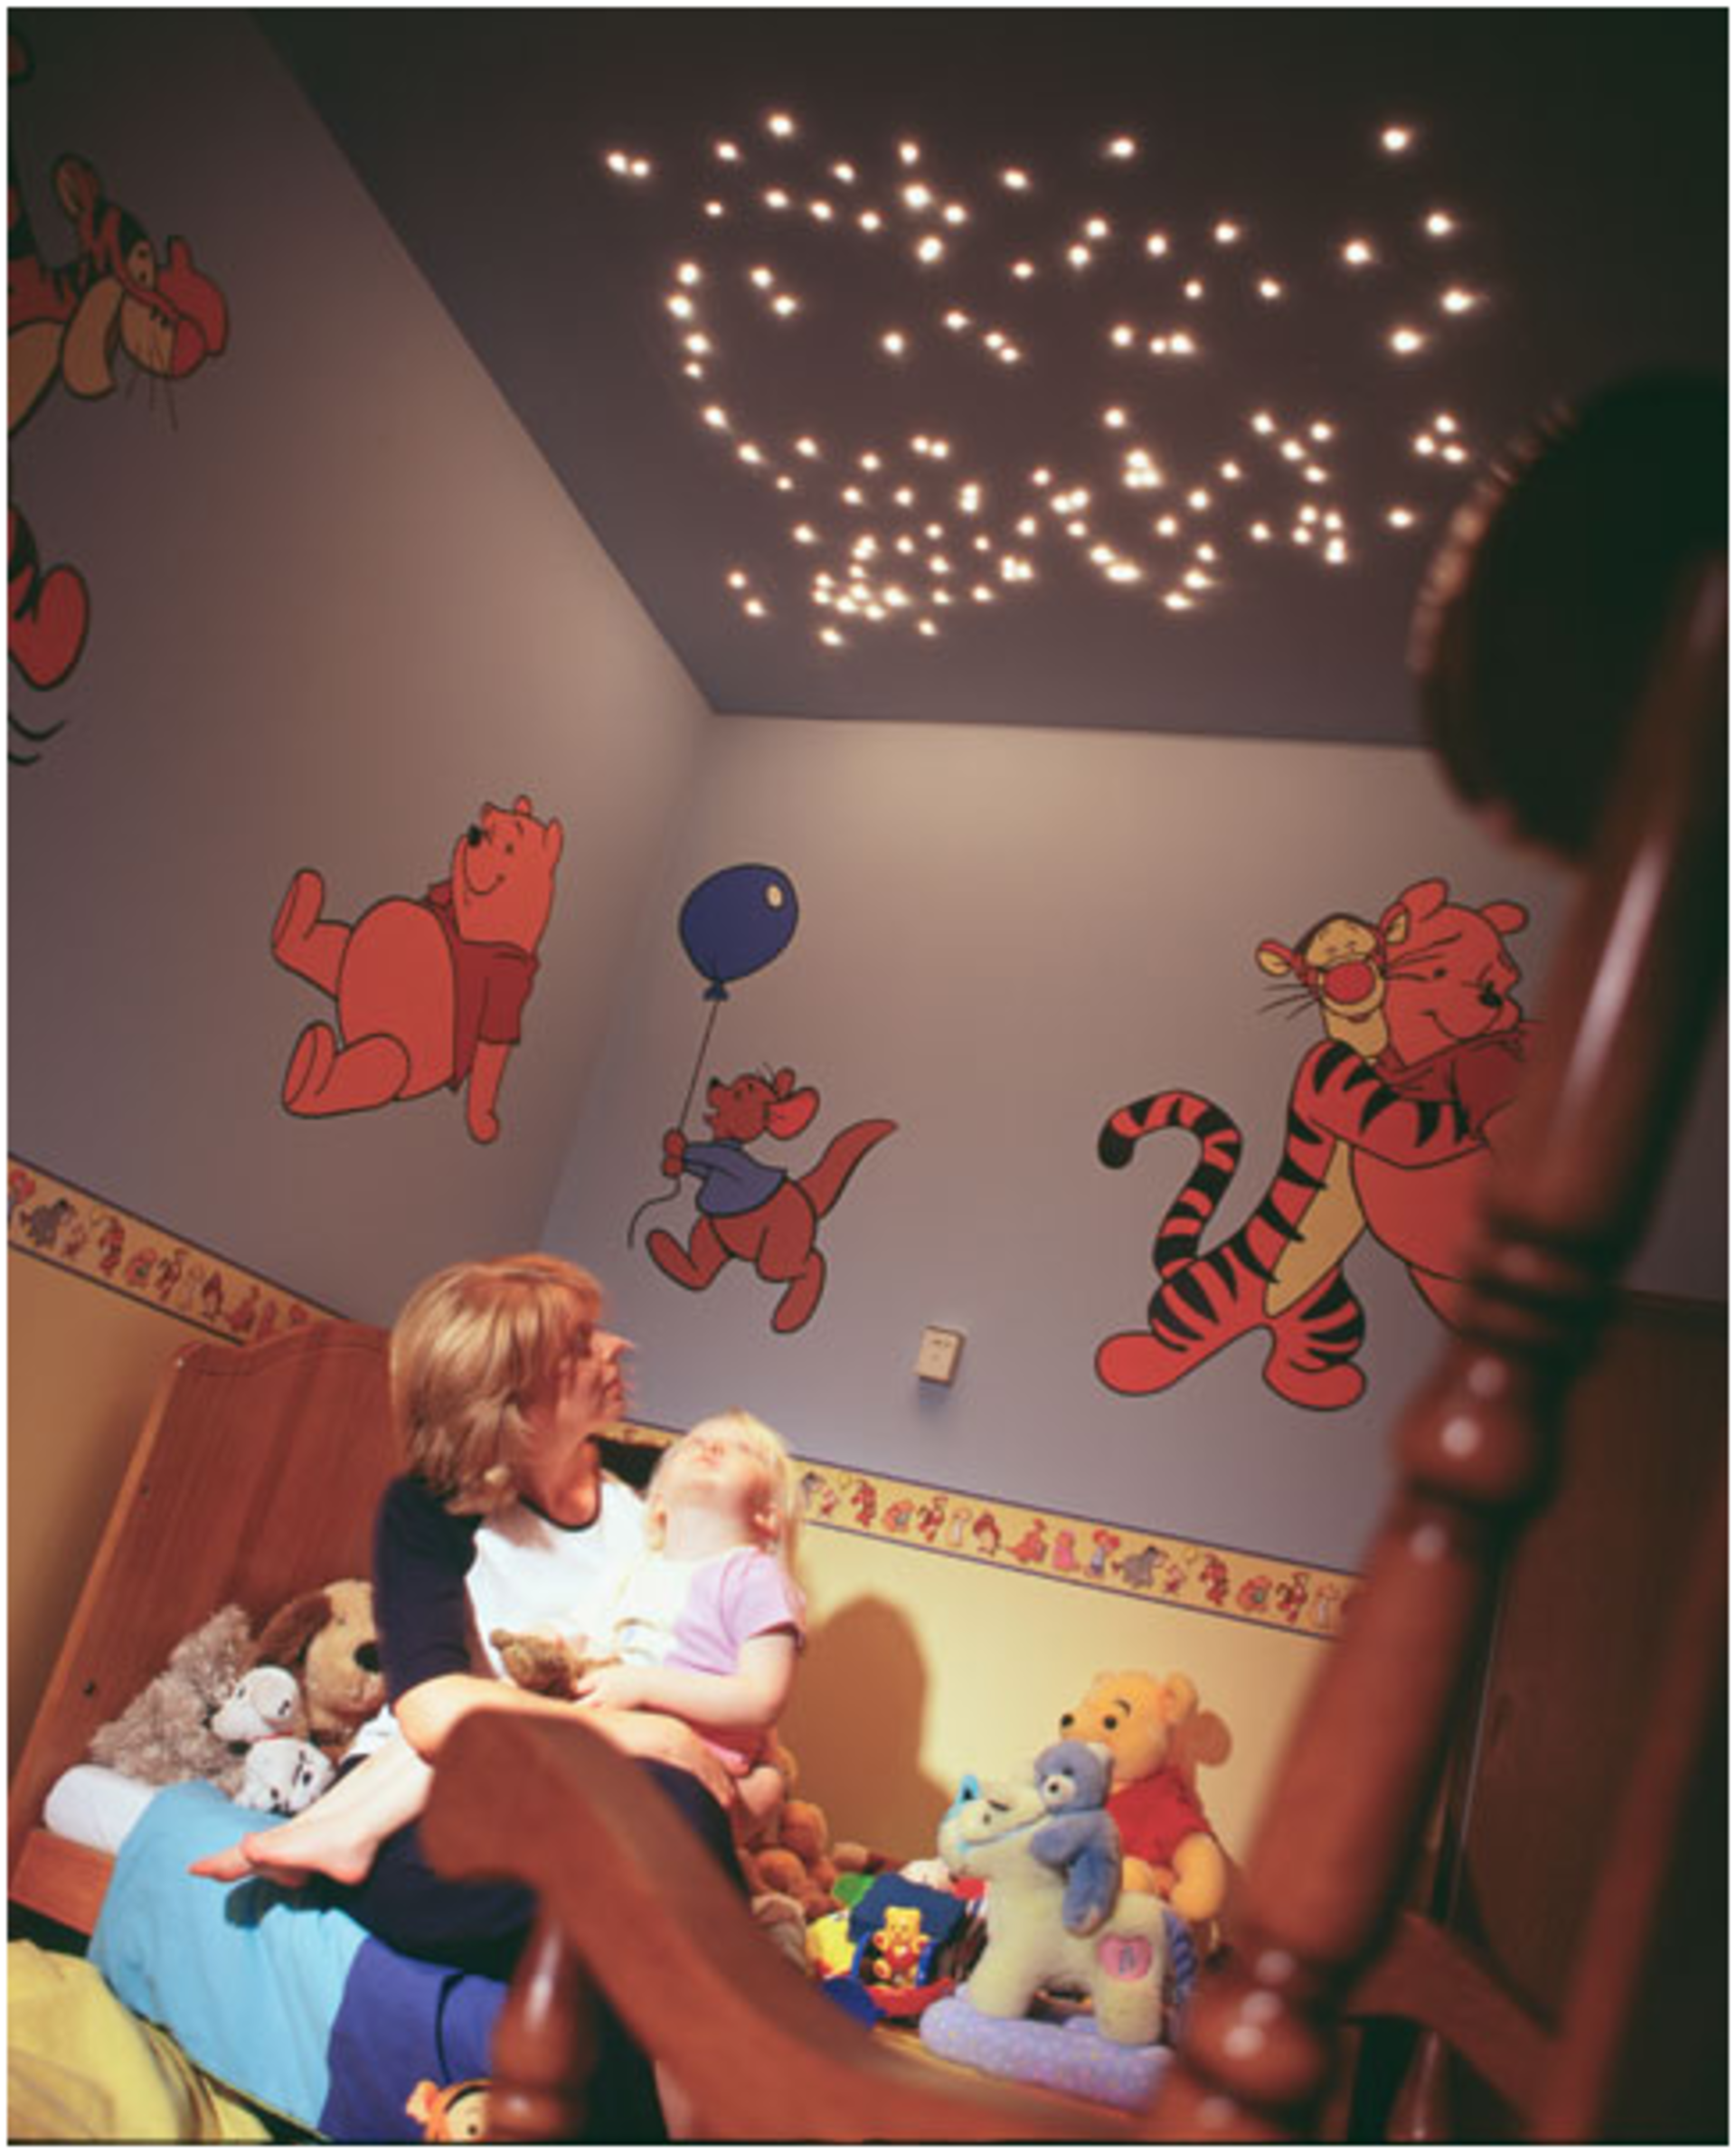 Night Starry Sky on Your Bedroom's Ceiling How To - Home Reviews